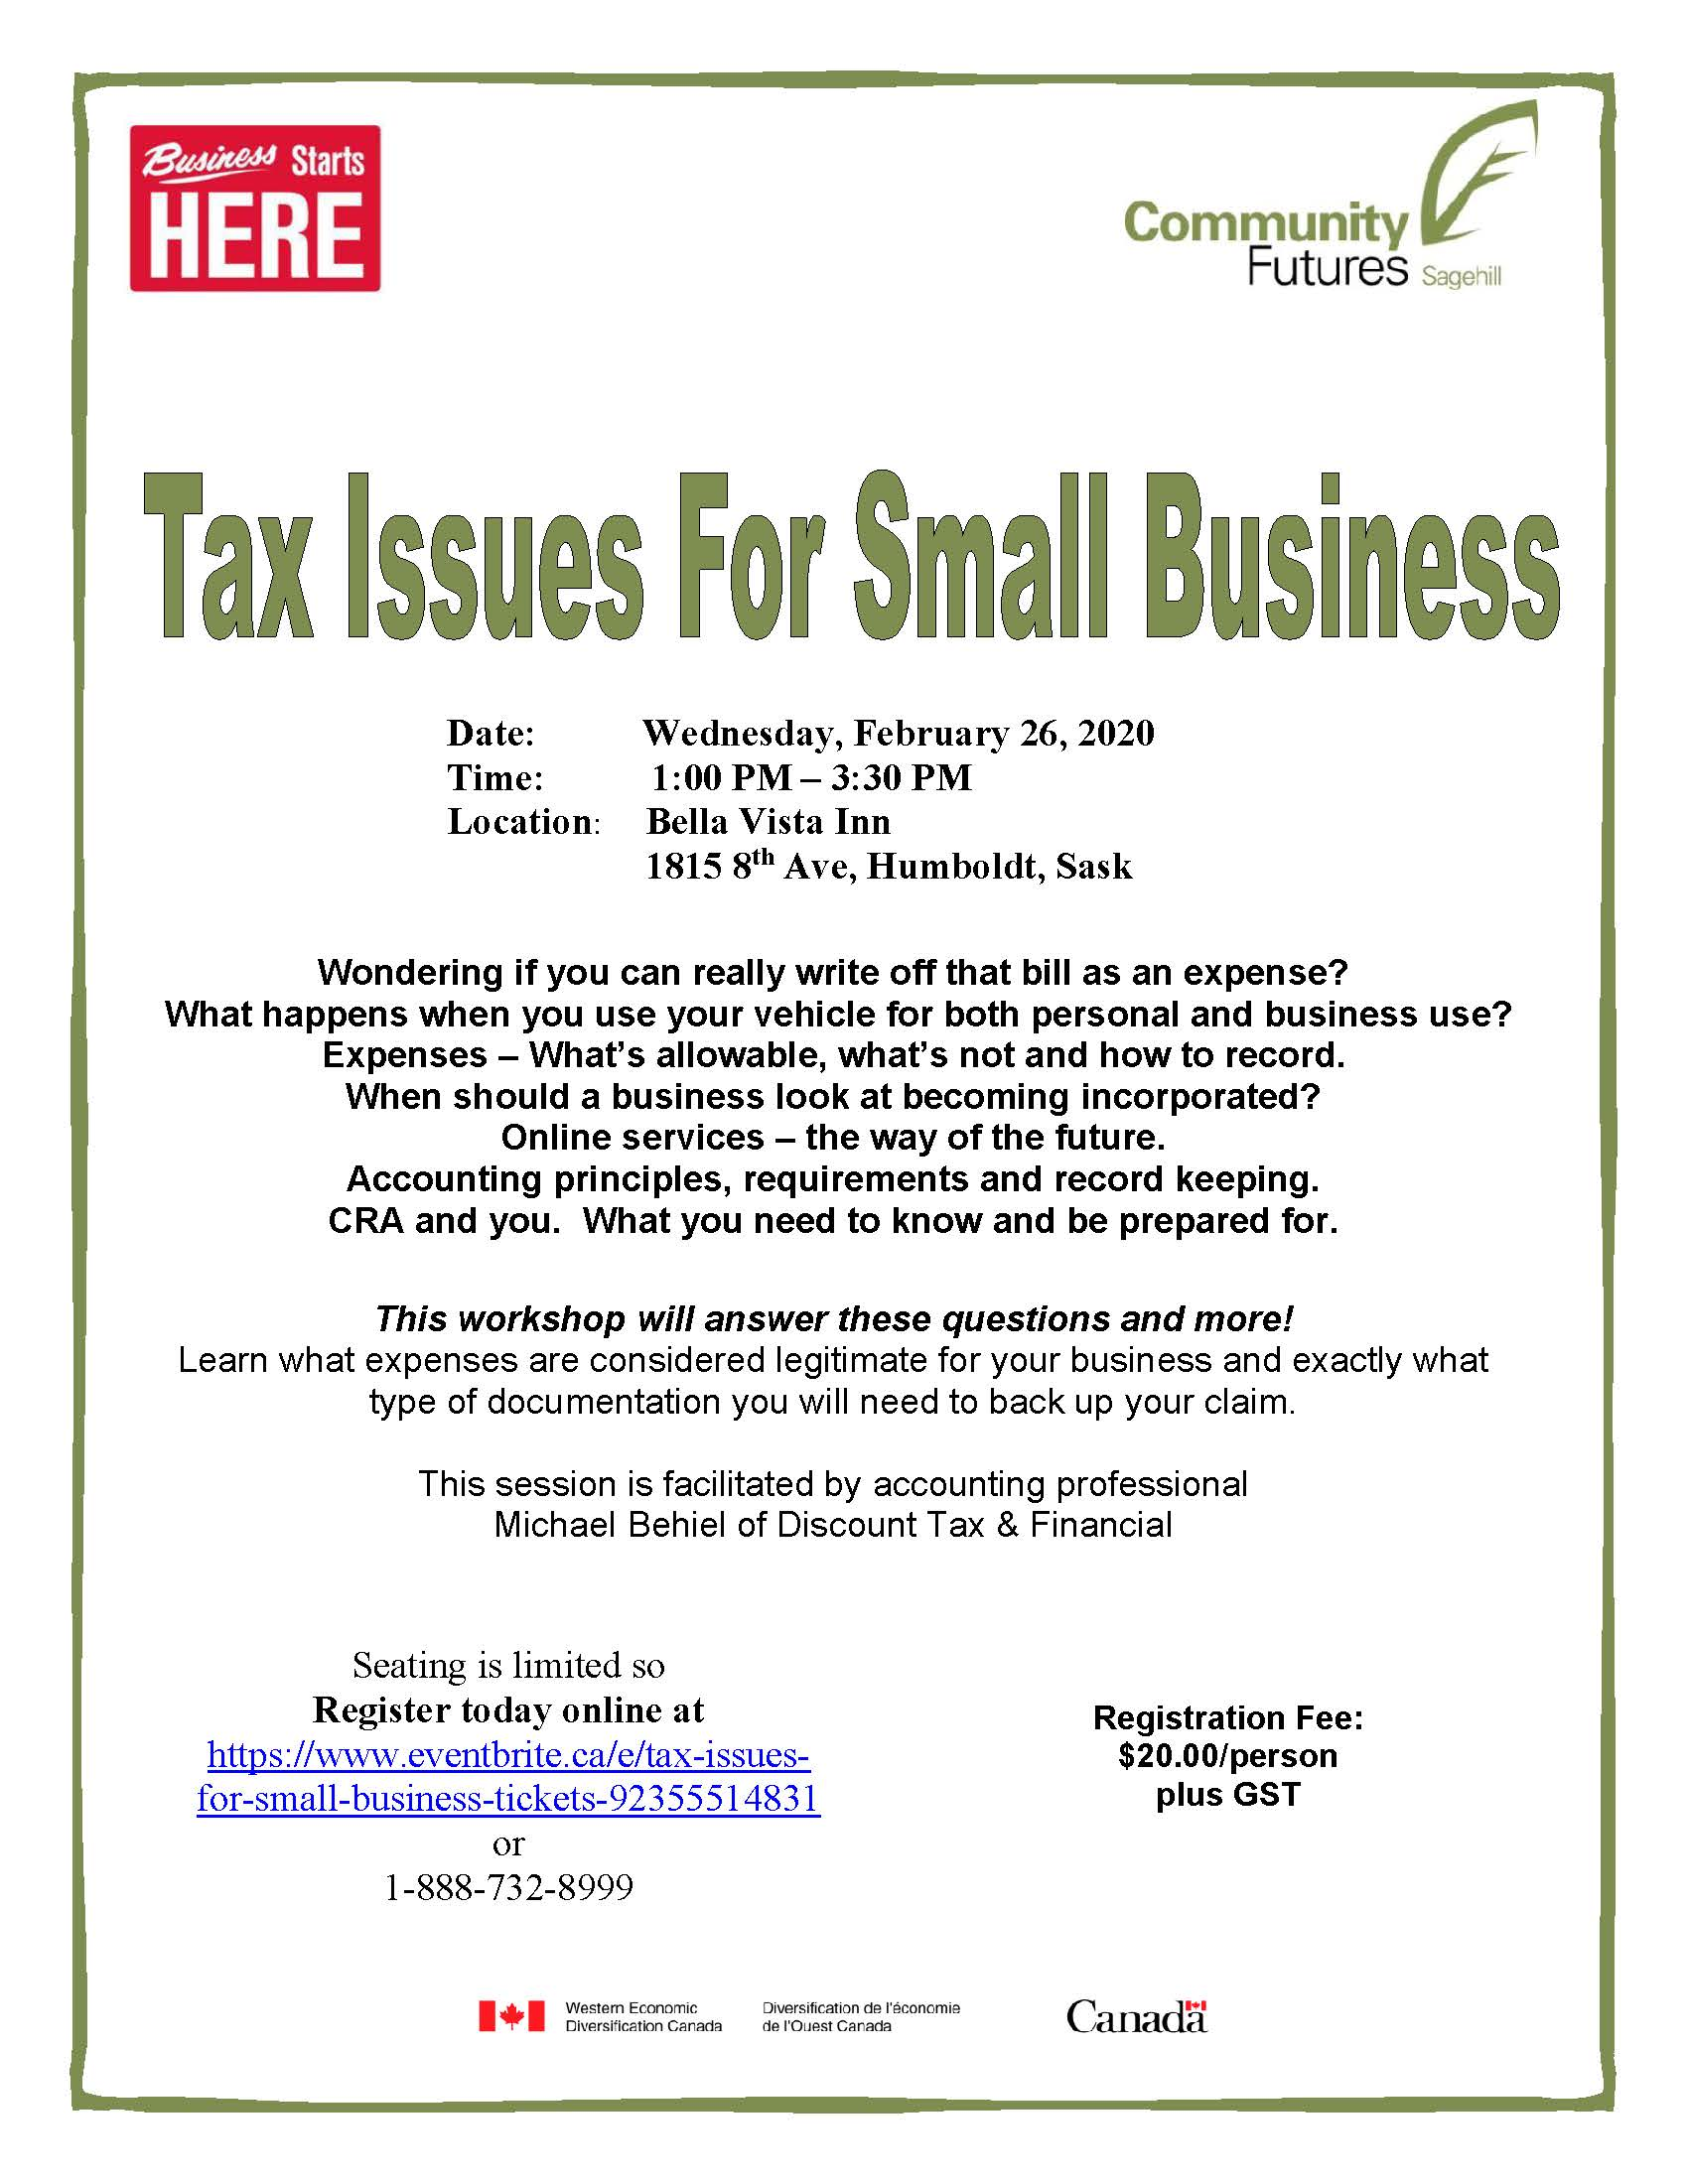 Tax Issues for Small Business